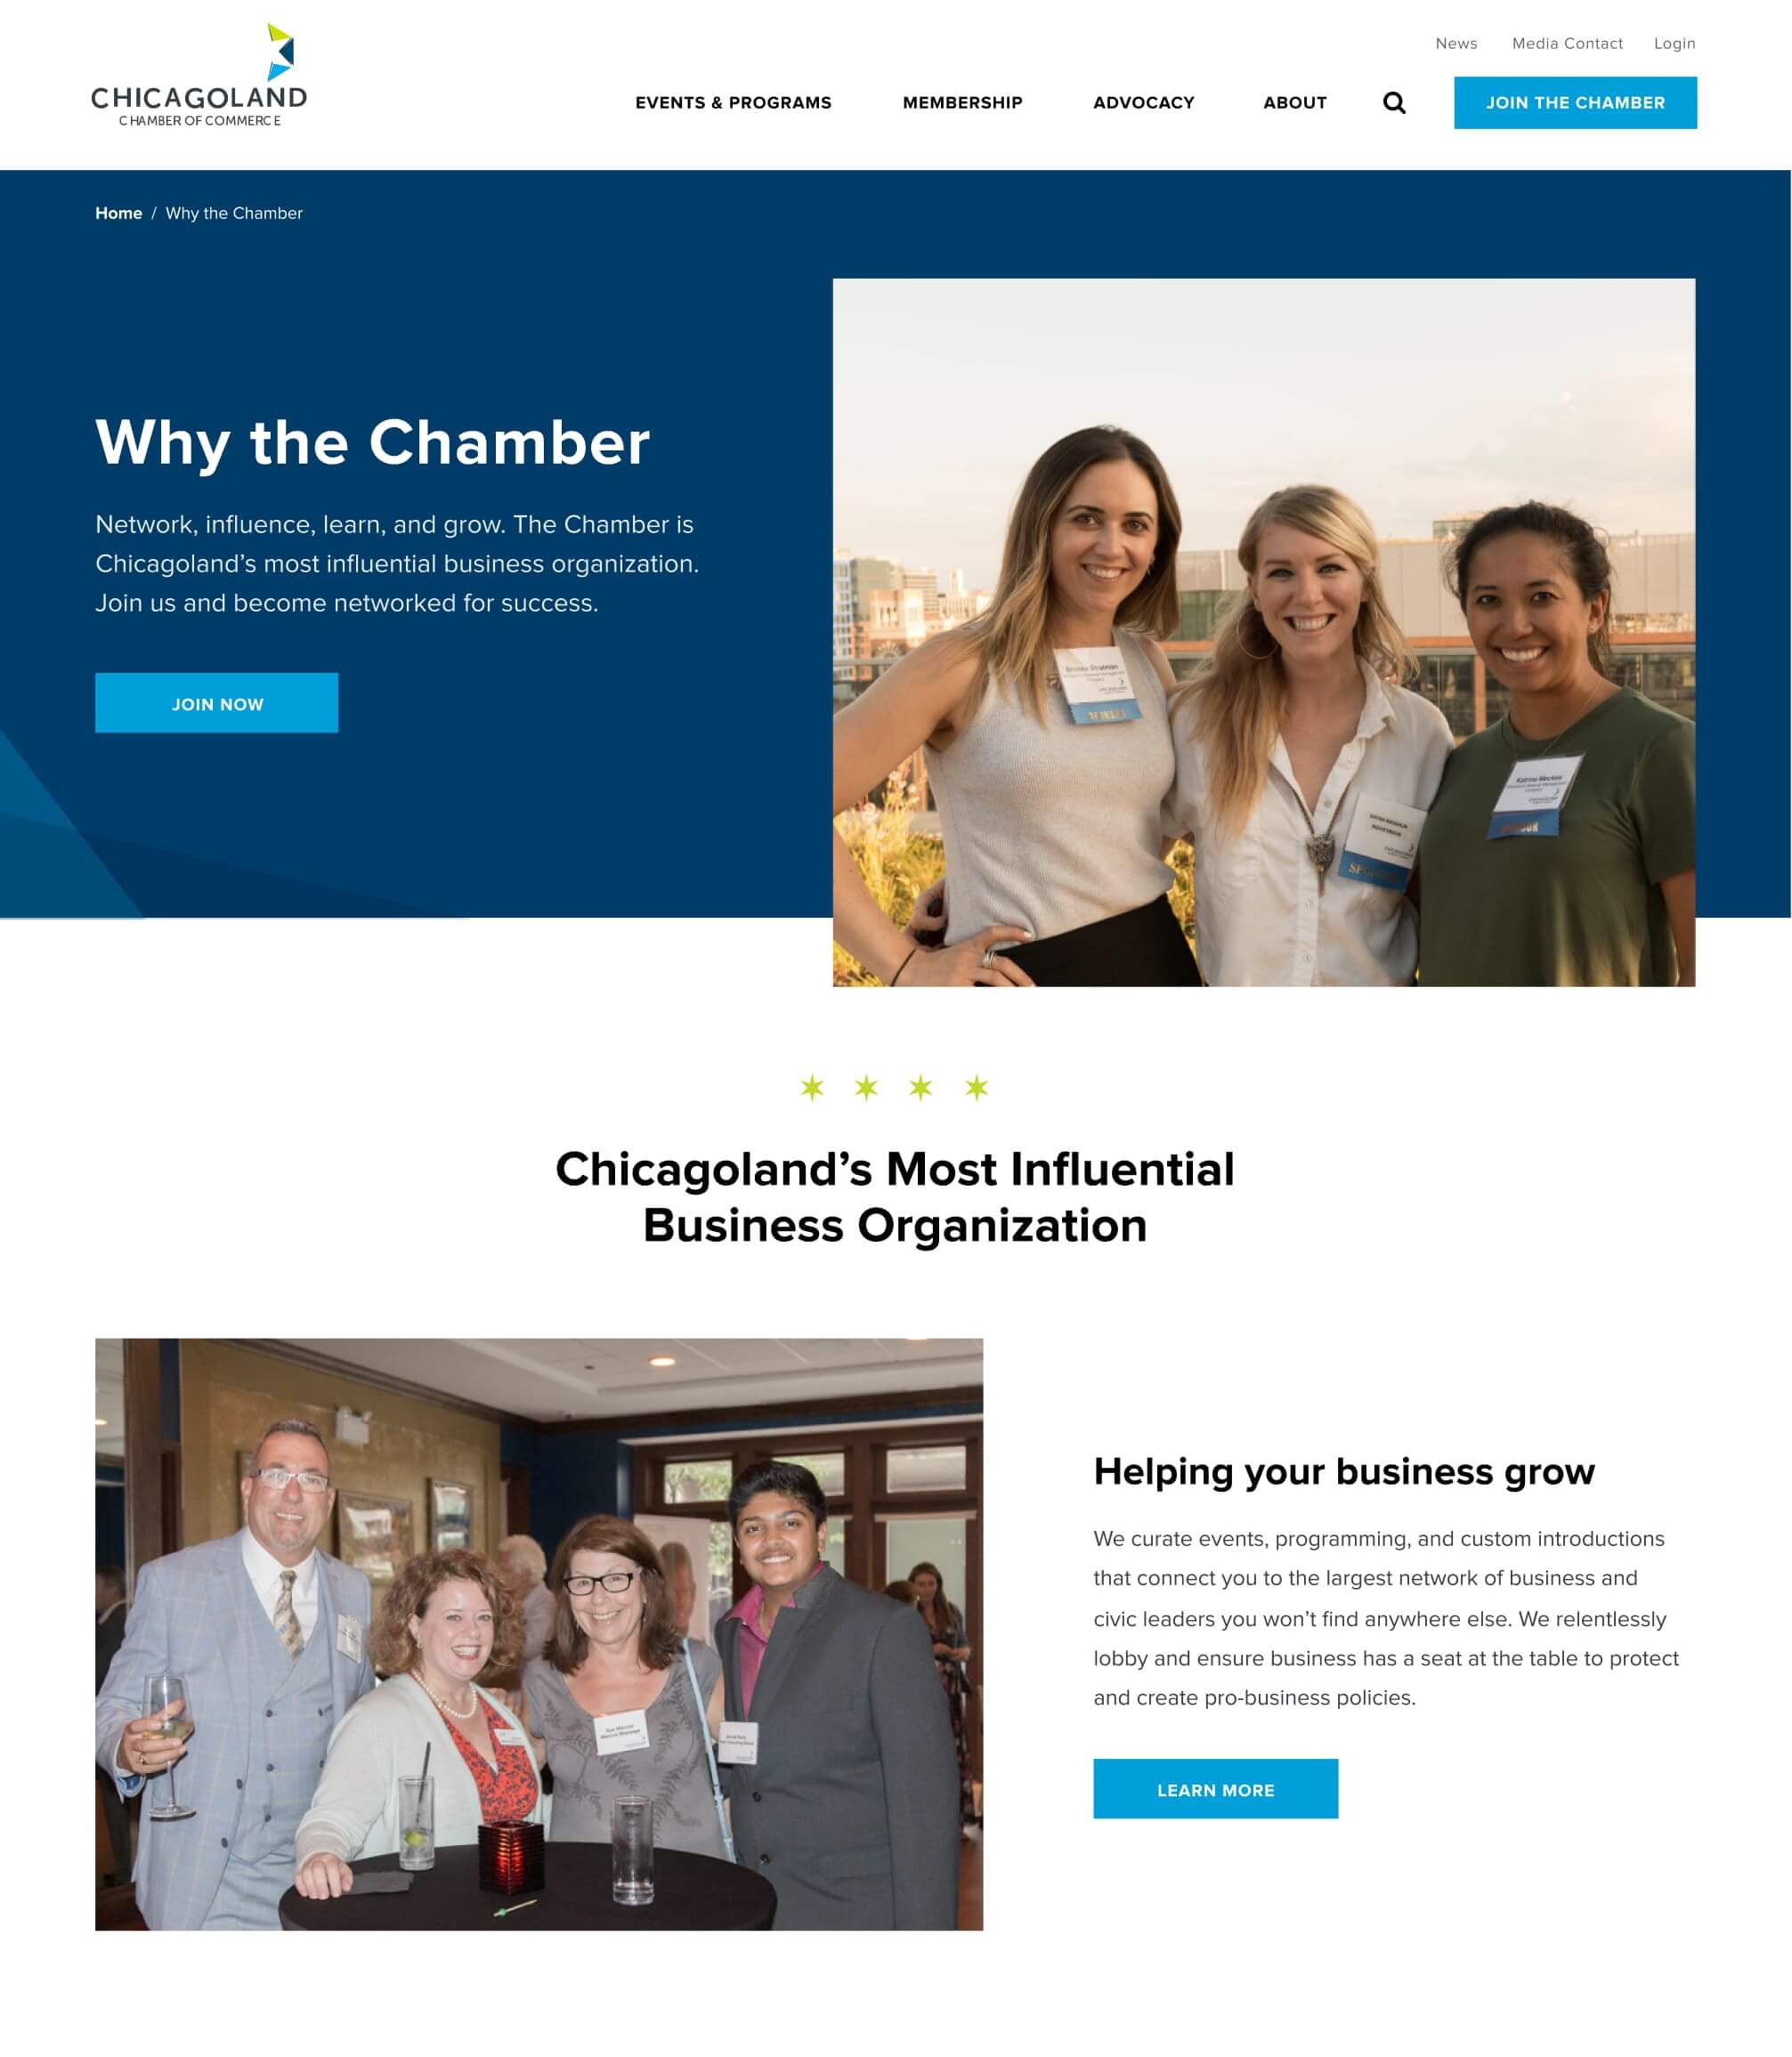 example of a landing page designed for the Chicagoland Chamber of Commerce